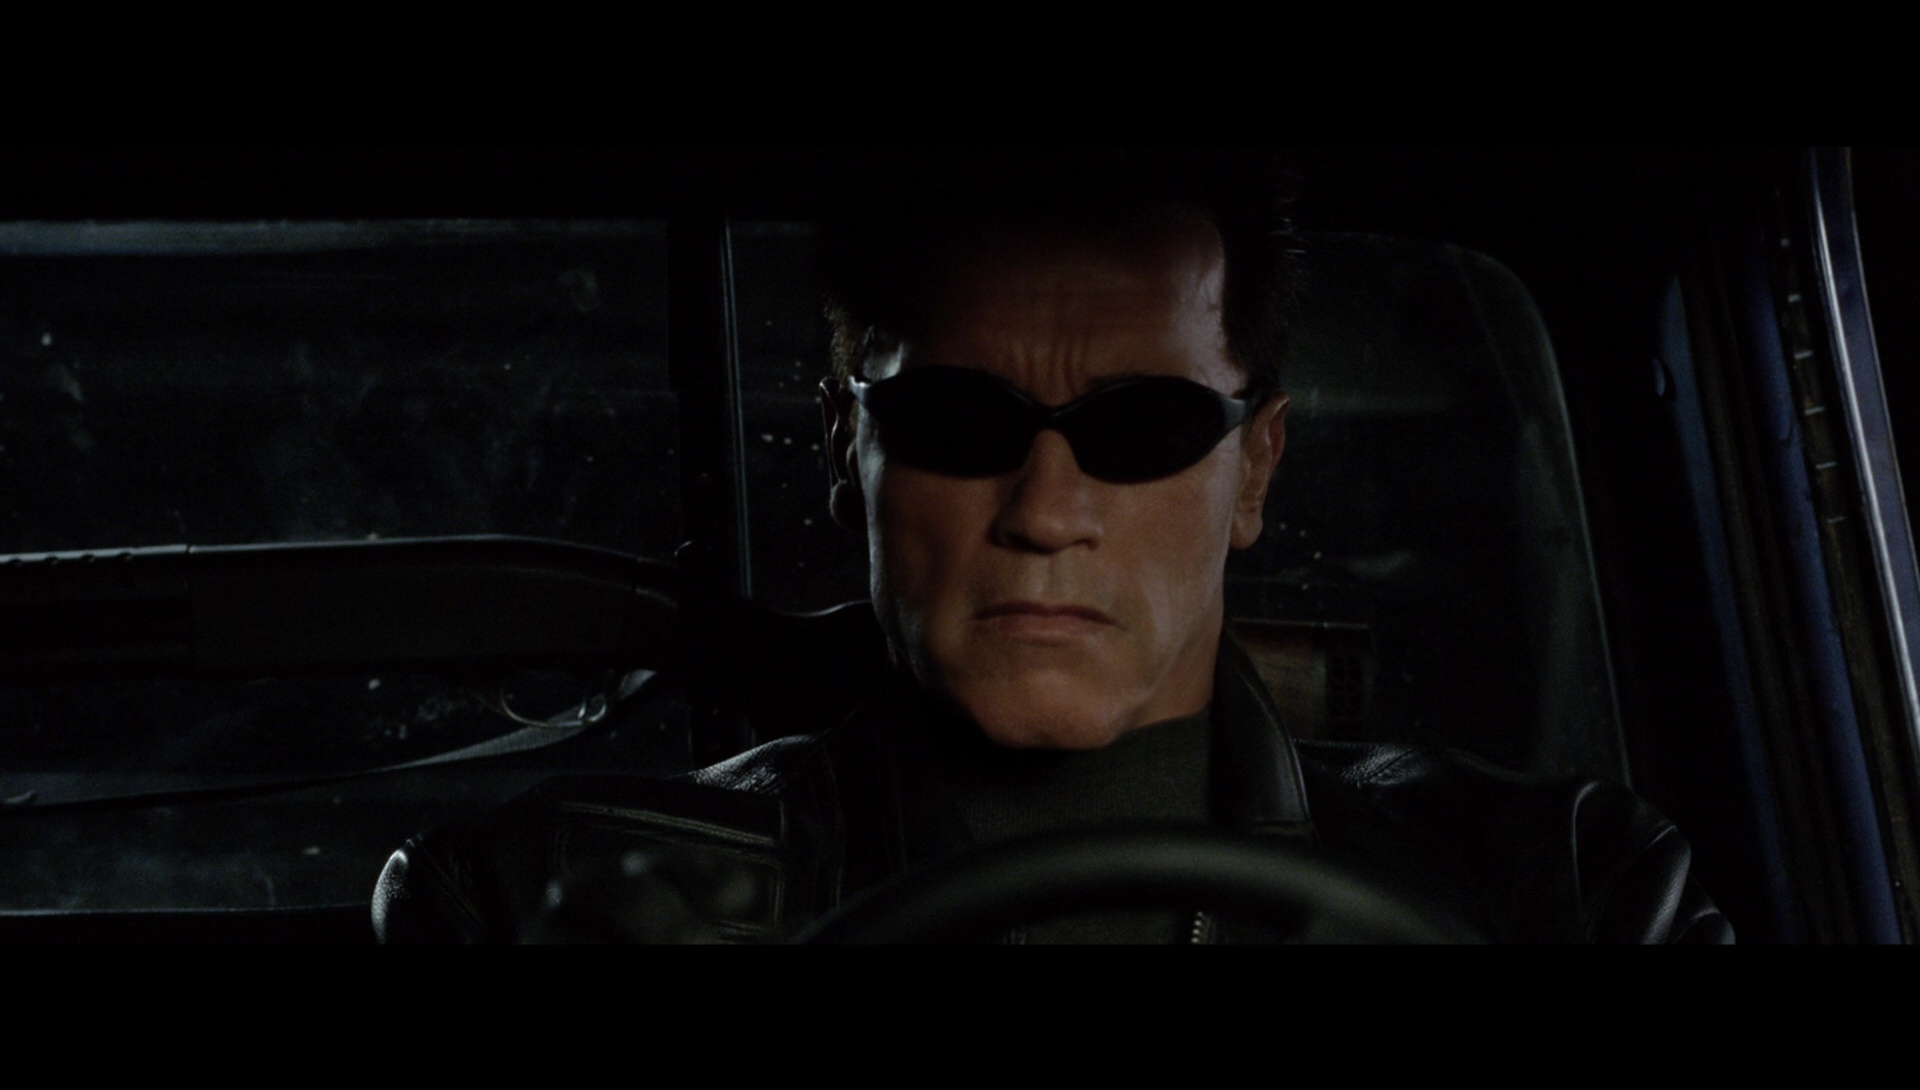 aa3503e763 Sama Eyewear Custom Designed Sunglasses Worn by Arnold Schwarzenegger in  Terminator 3  Rise of .